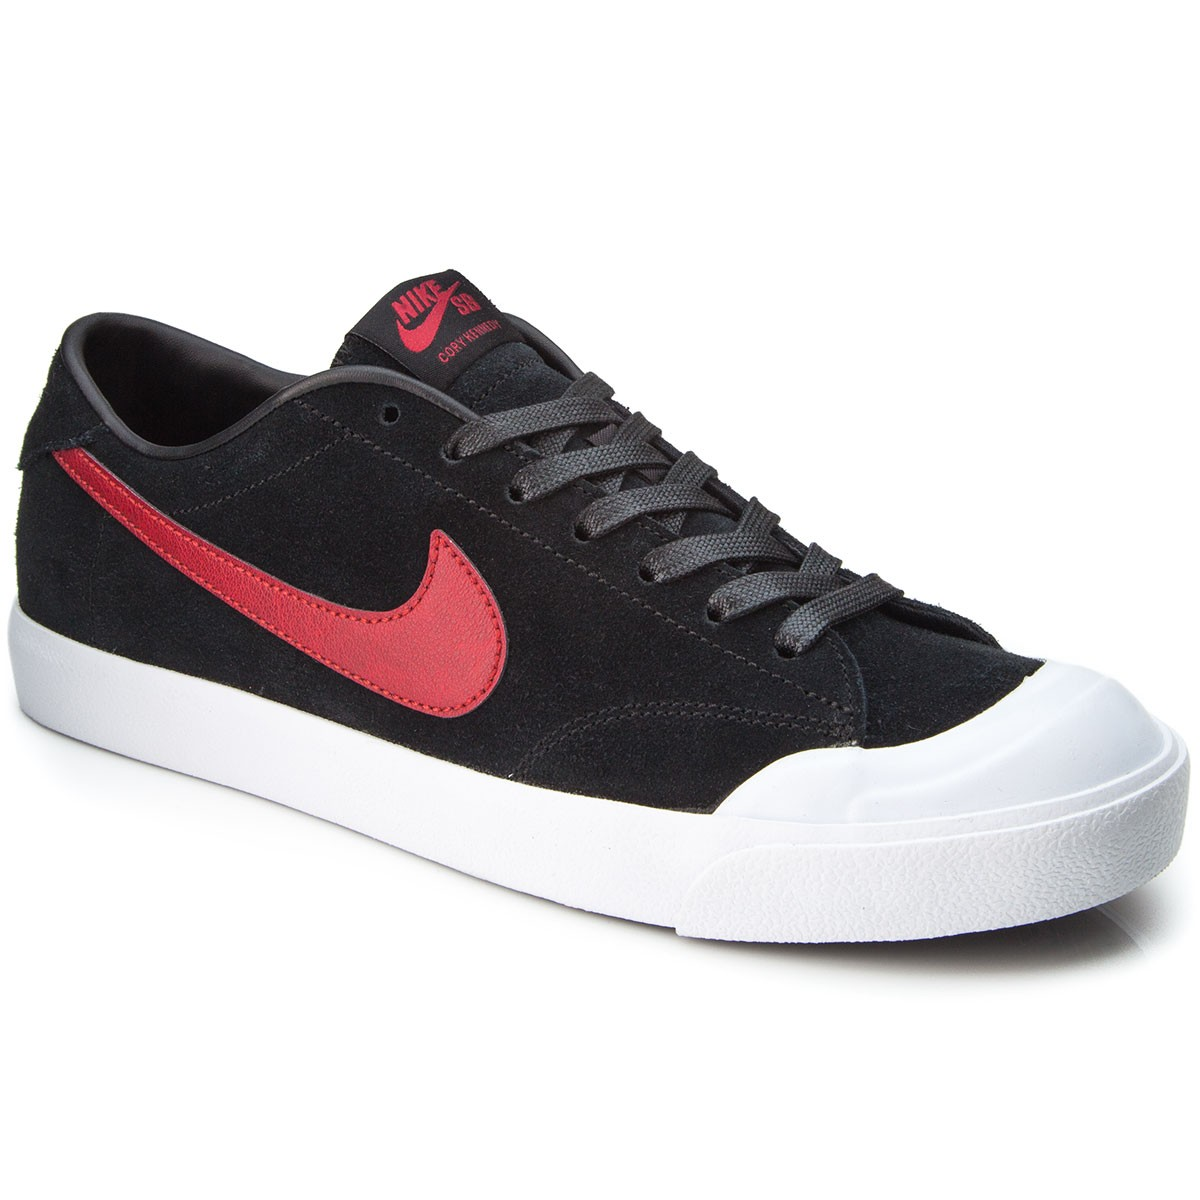 3be4b1e1d2c nike-zoom-all-court-ck-shoes-black-white-red-1.1506664428.jpg